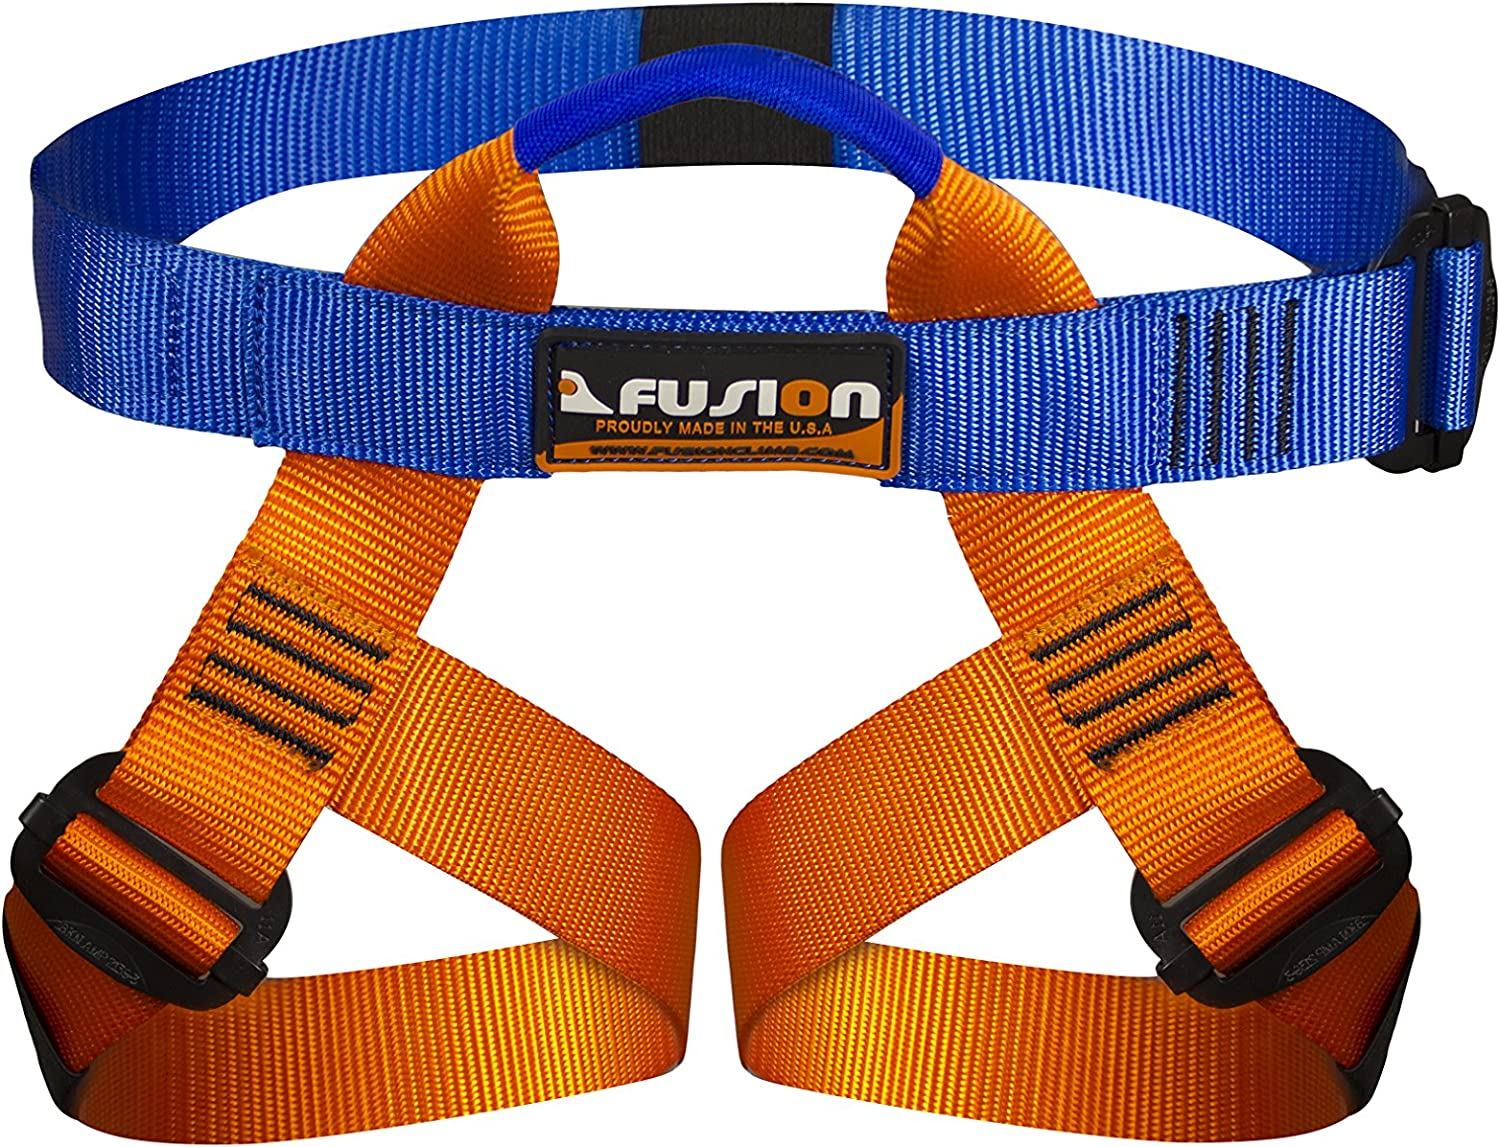 Fusion Kids Centaur Harness, Orange, Youth Universal (12 and Under) : Sports & Outdoors